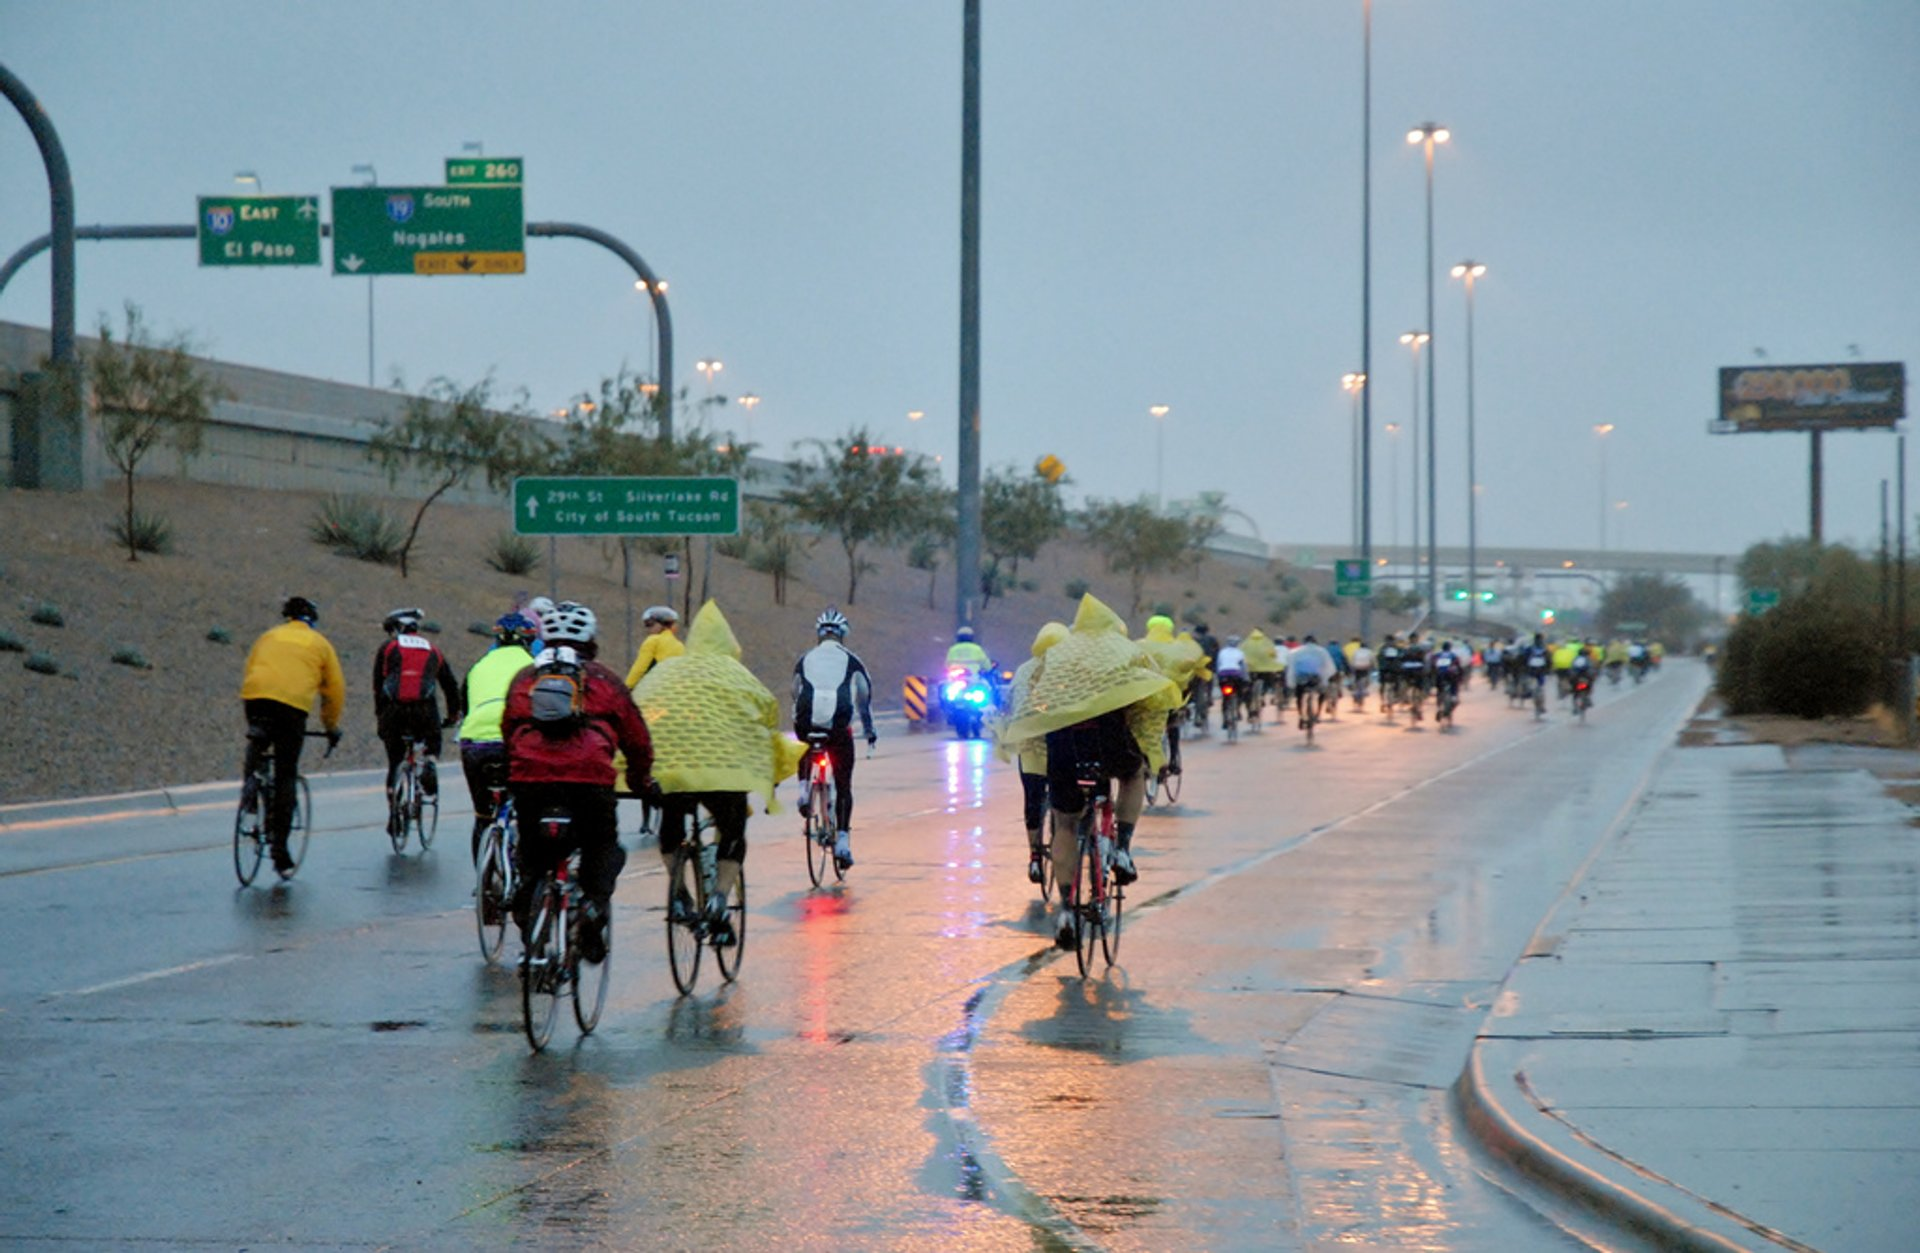 Best time to see El Tour de Tucson in Arizona 2020